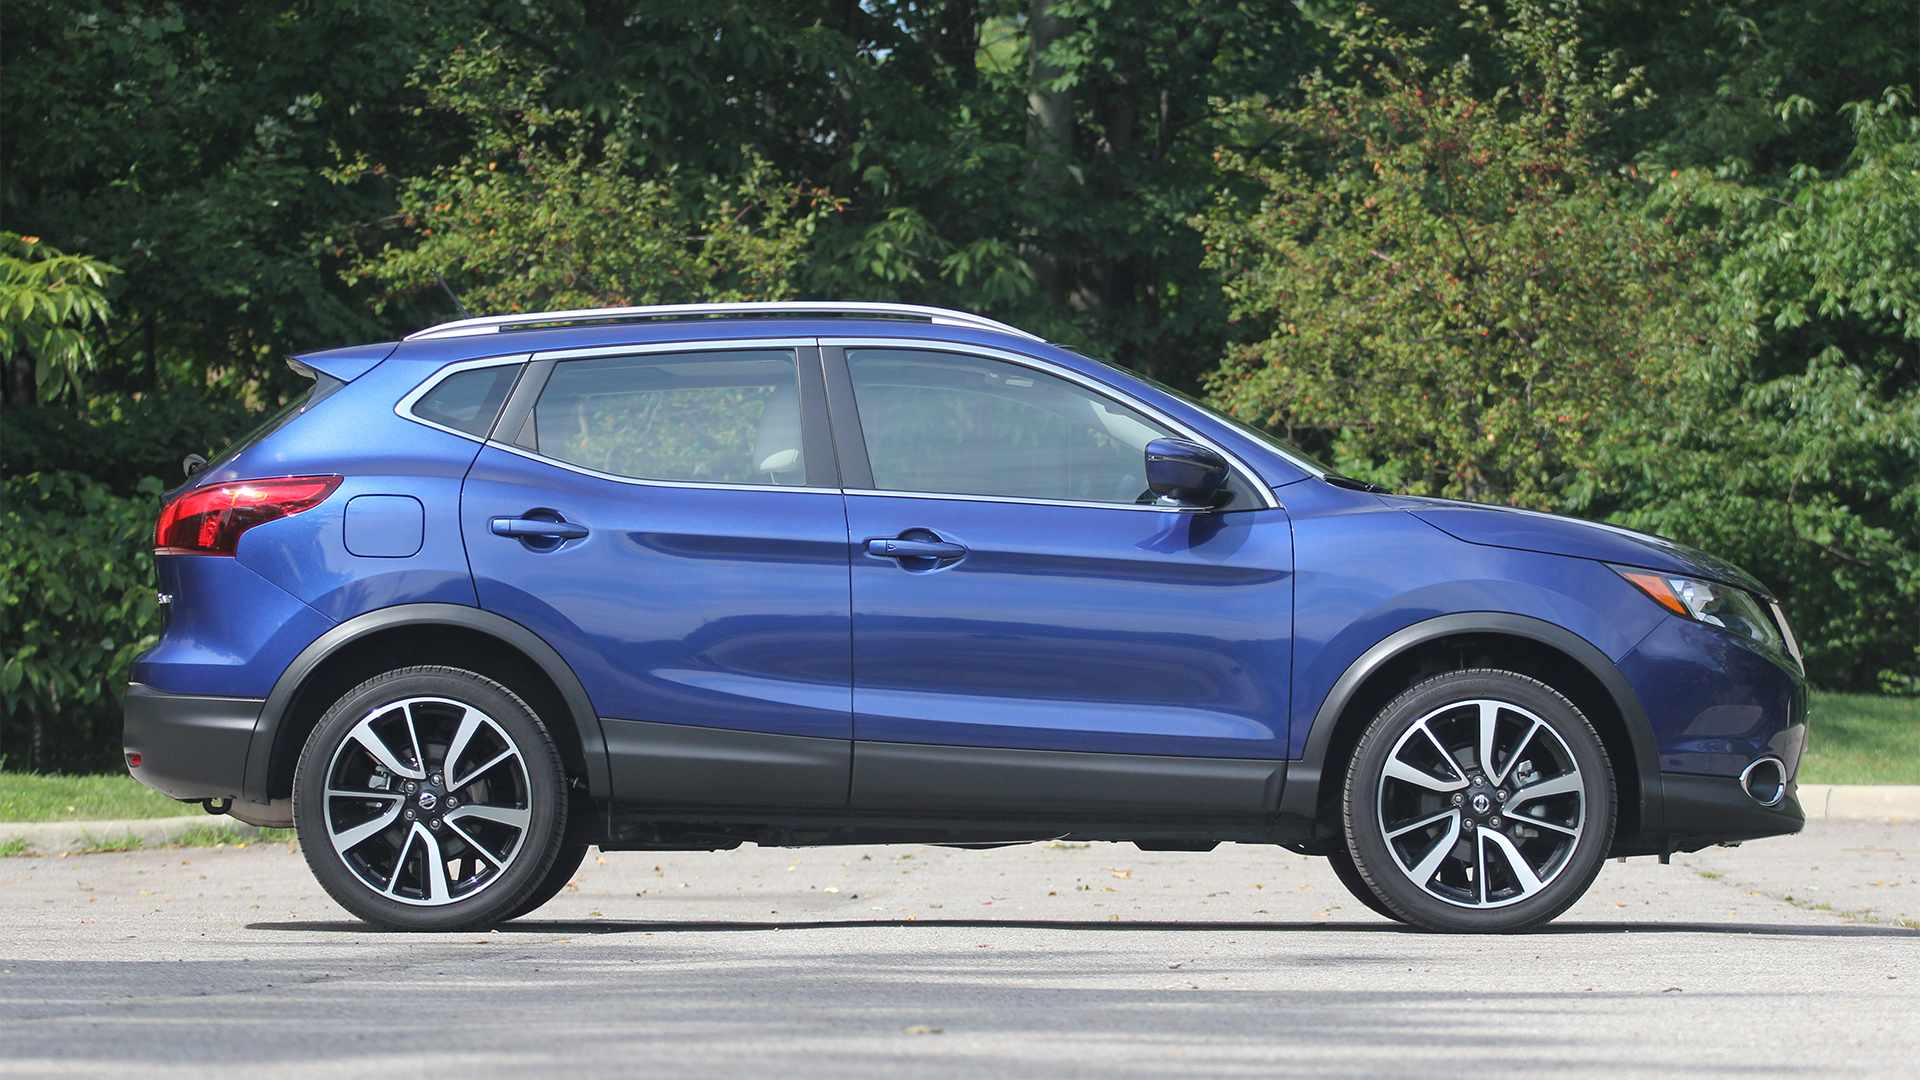 58 All New The Nissan 2019 Rogue New Review Configurations by The Nissan 2019 Rogue New Review